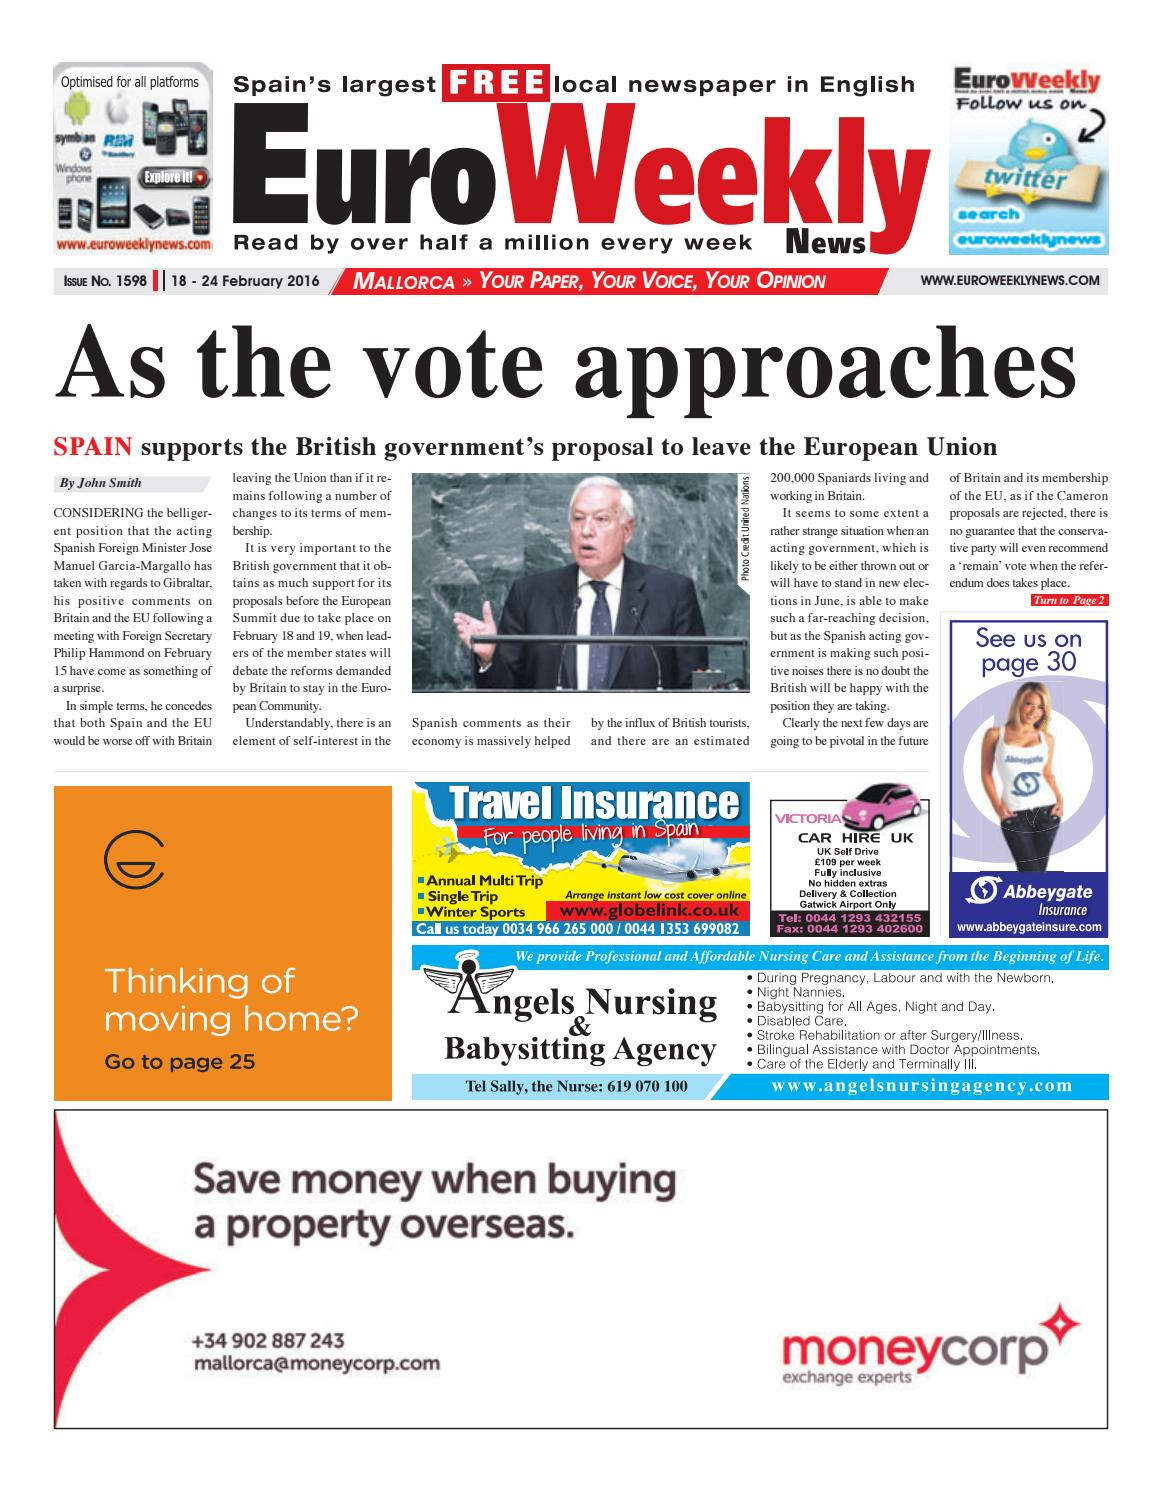 2c00ff68ec7f0 Euro Weekly News - Mallorca 18 - 24 February 2016 Issue 1598 by Euro Weekly  News Media S.A. - issuu